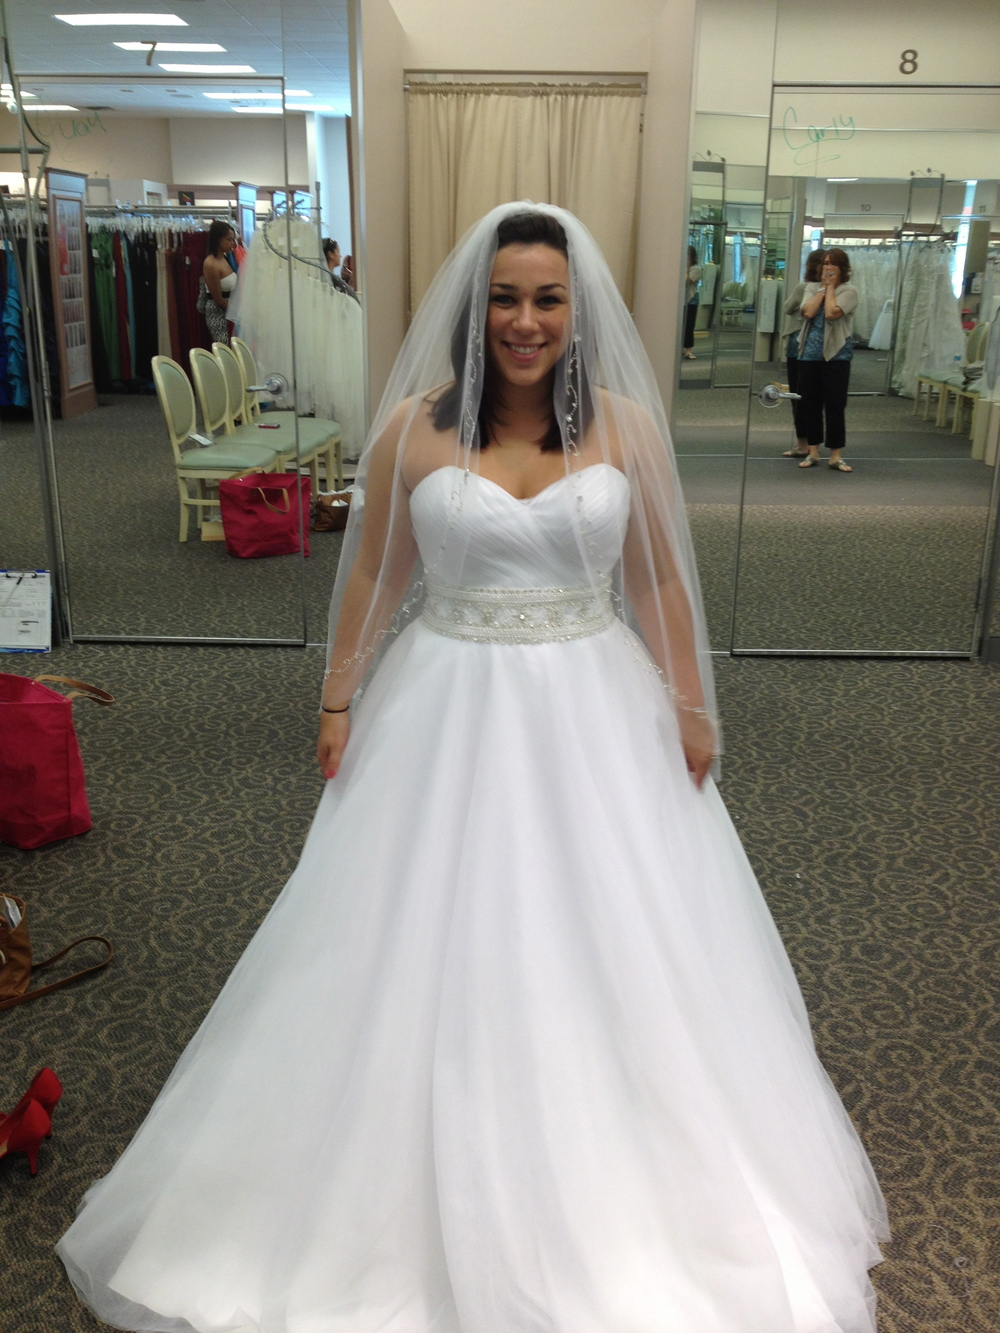 This is me at David's Bridal. I chose the 6th dress that I tried on. I love my mom's face in the mirror :) Worth every tomato.